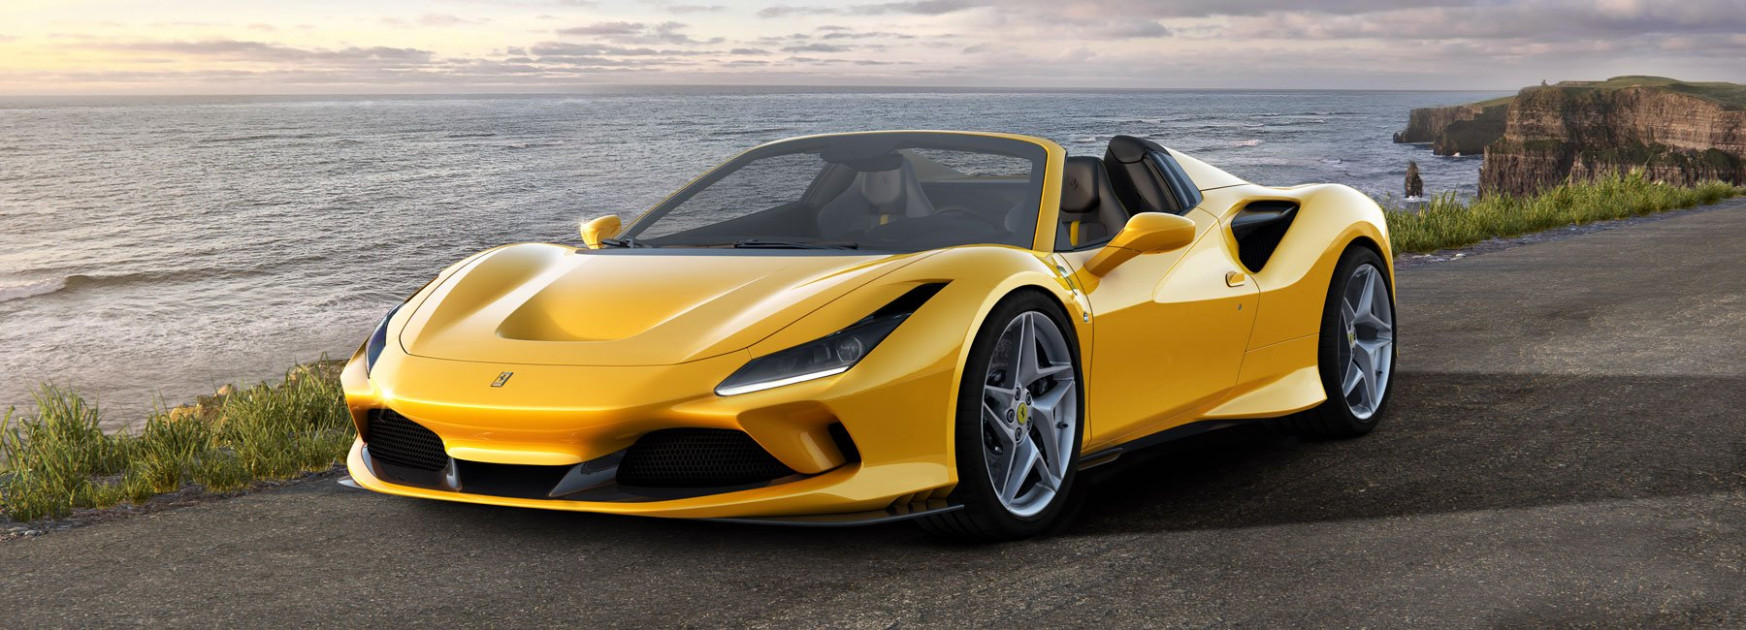 ferrari reveals 6 f6 spider with more power and less weight - ferrari z 2020